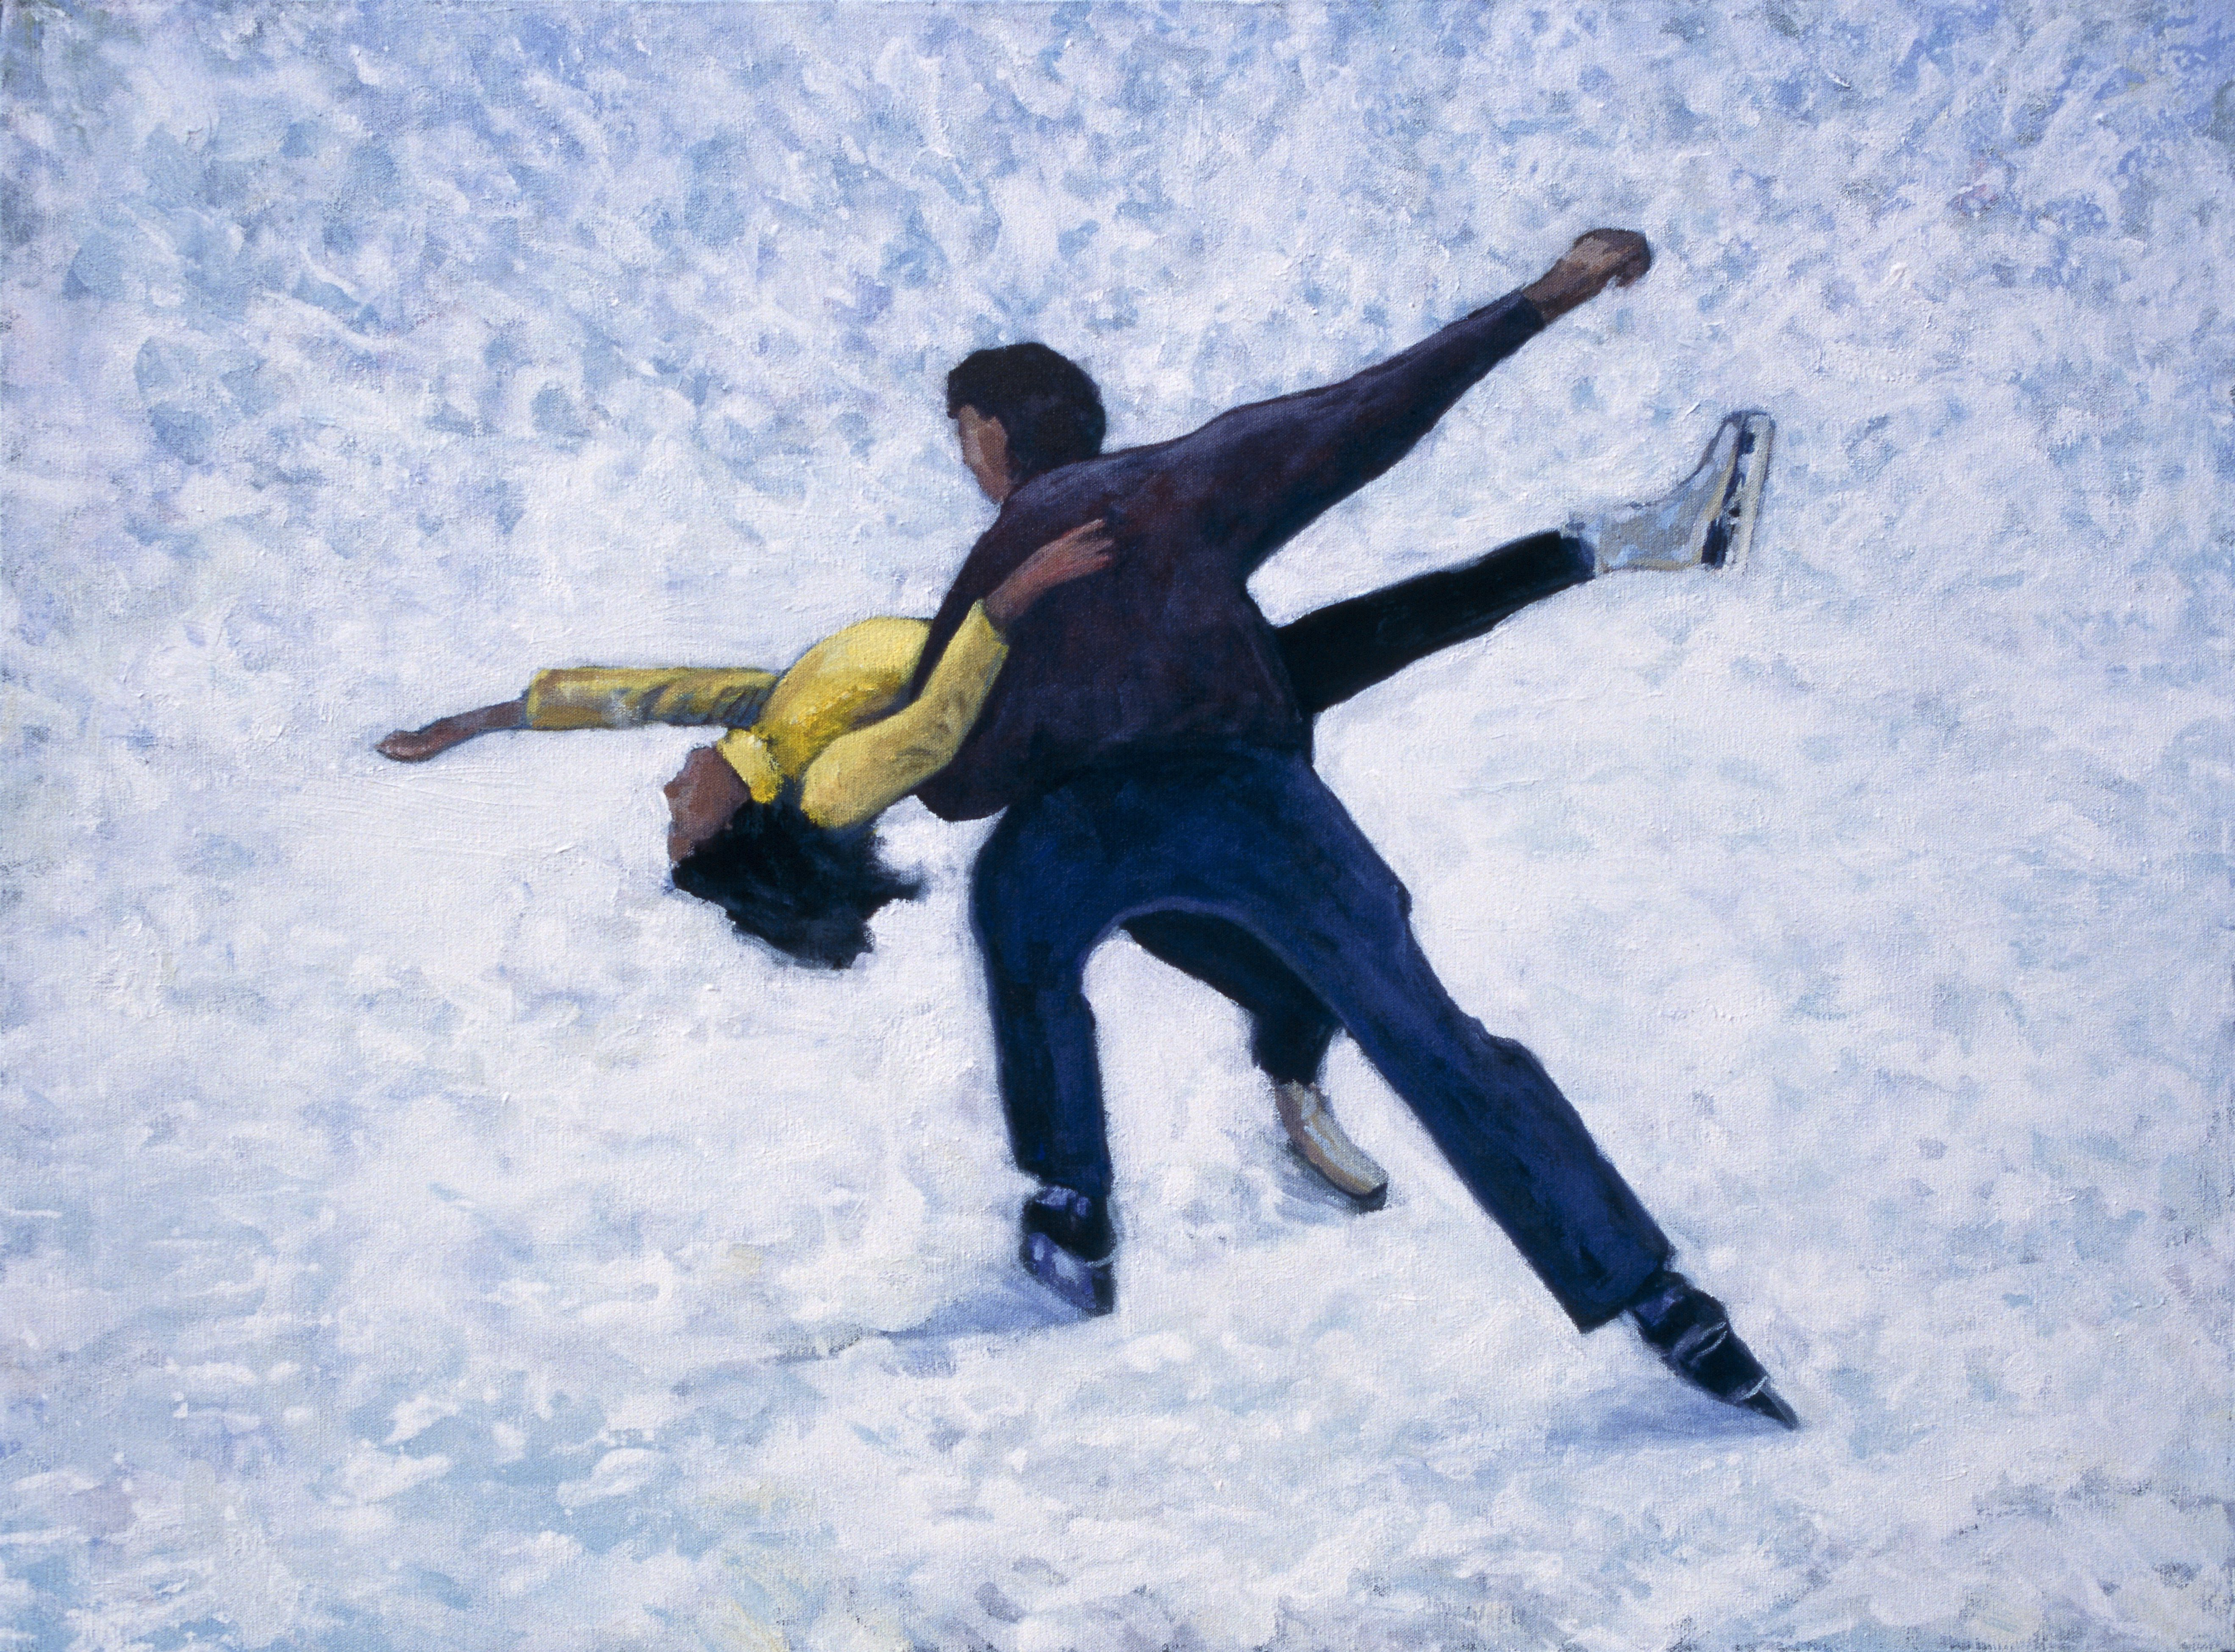 Couple figure skating outdoors